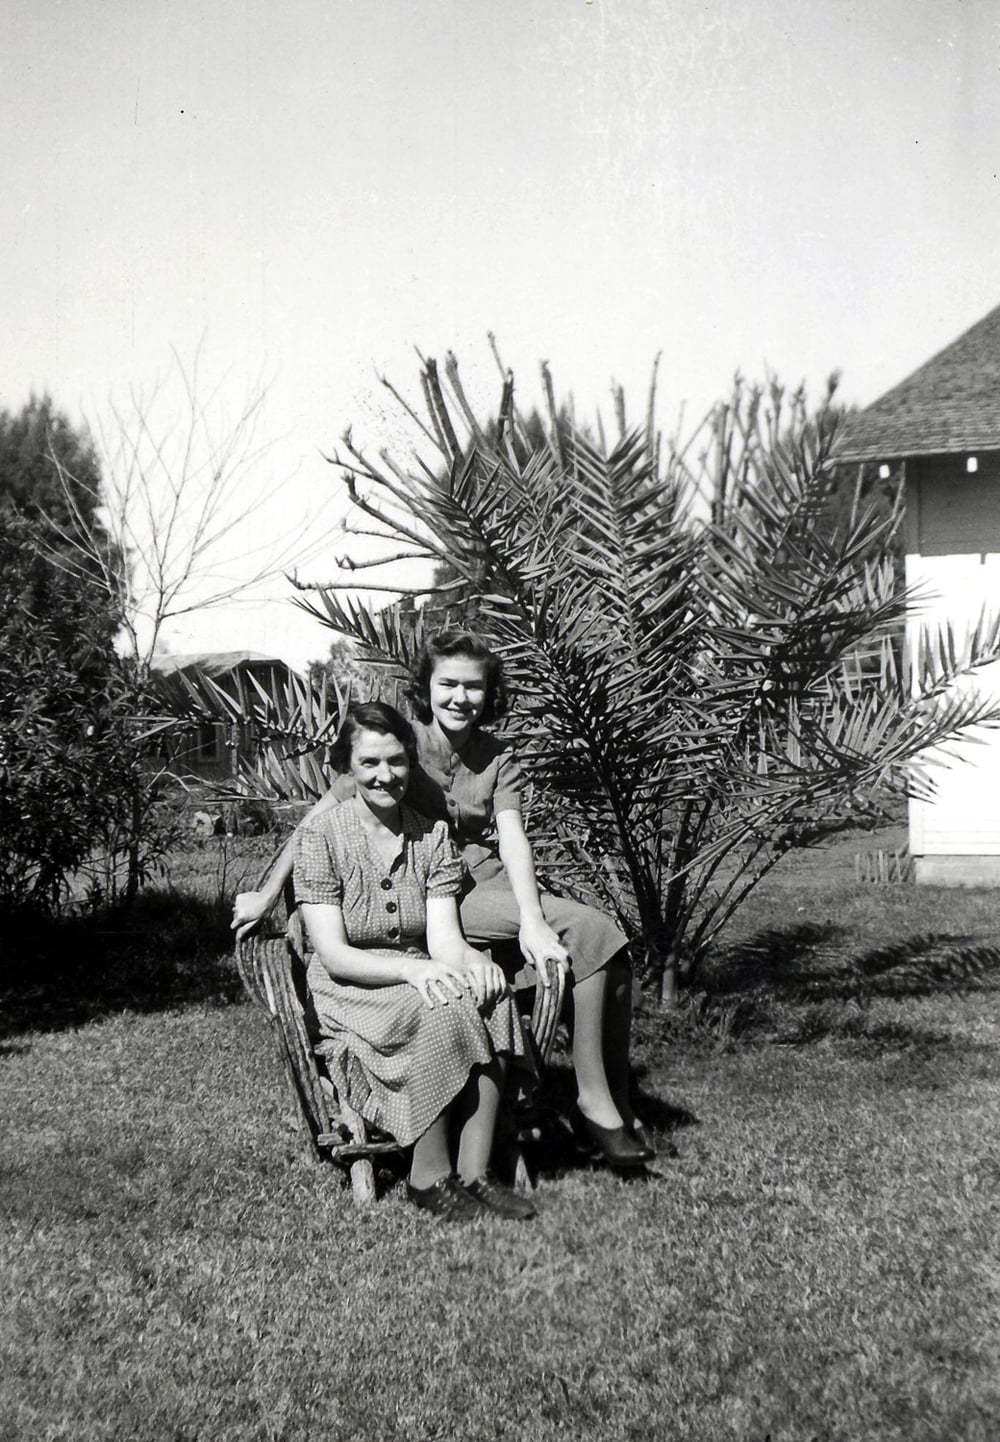 Mom and her mom.  My mom continued to live at home until she married.  That way she could help her mom with expenses and provide some companionship.